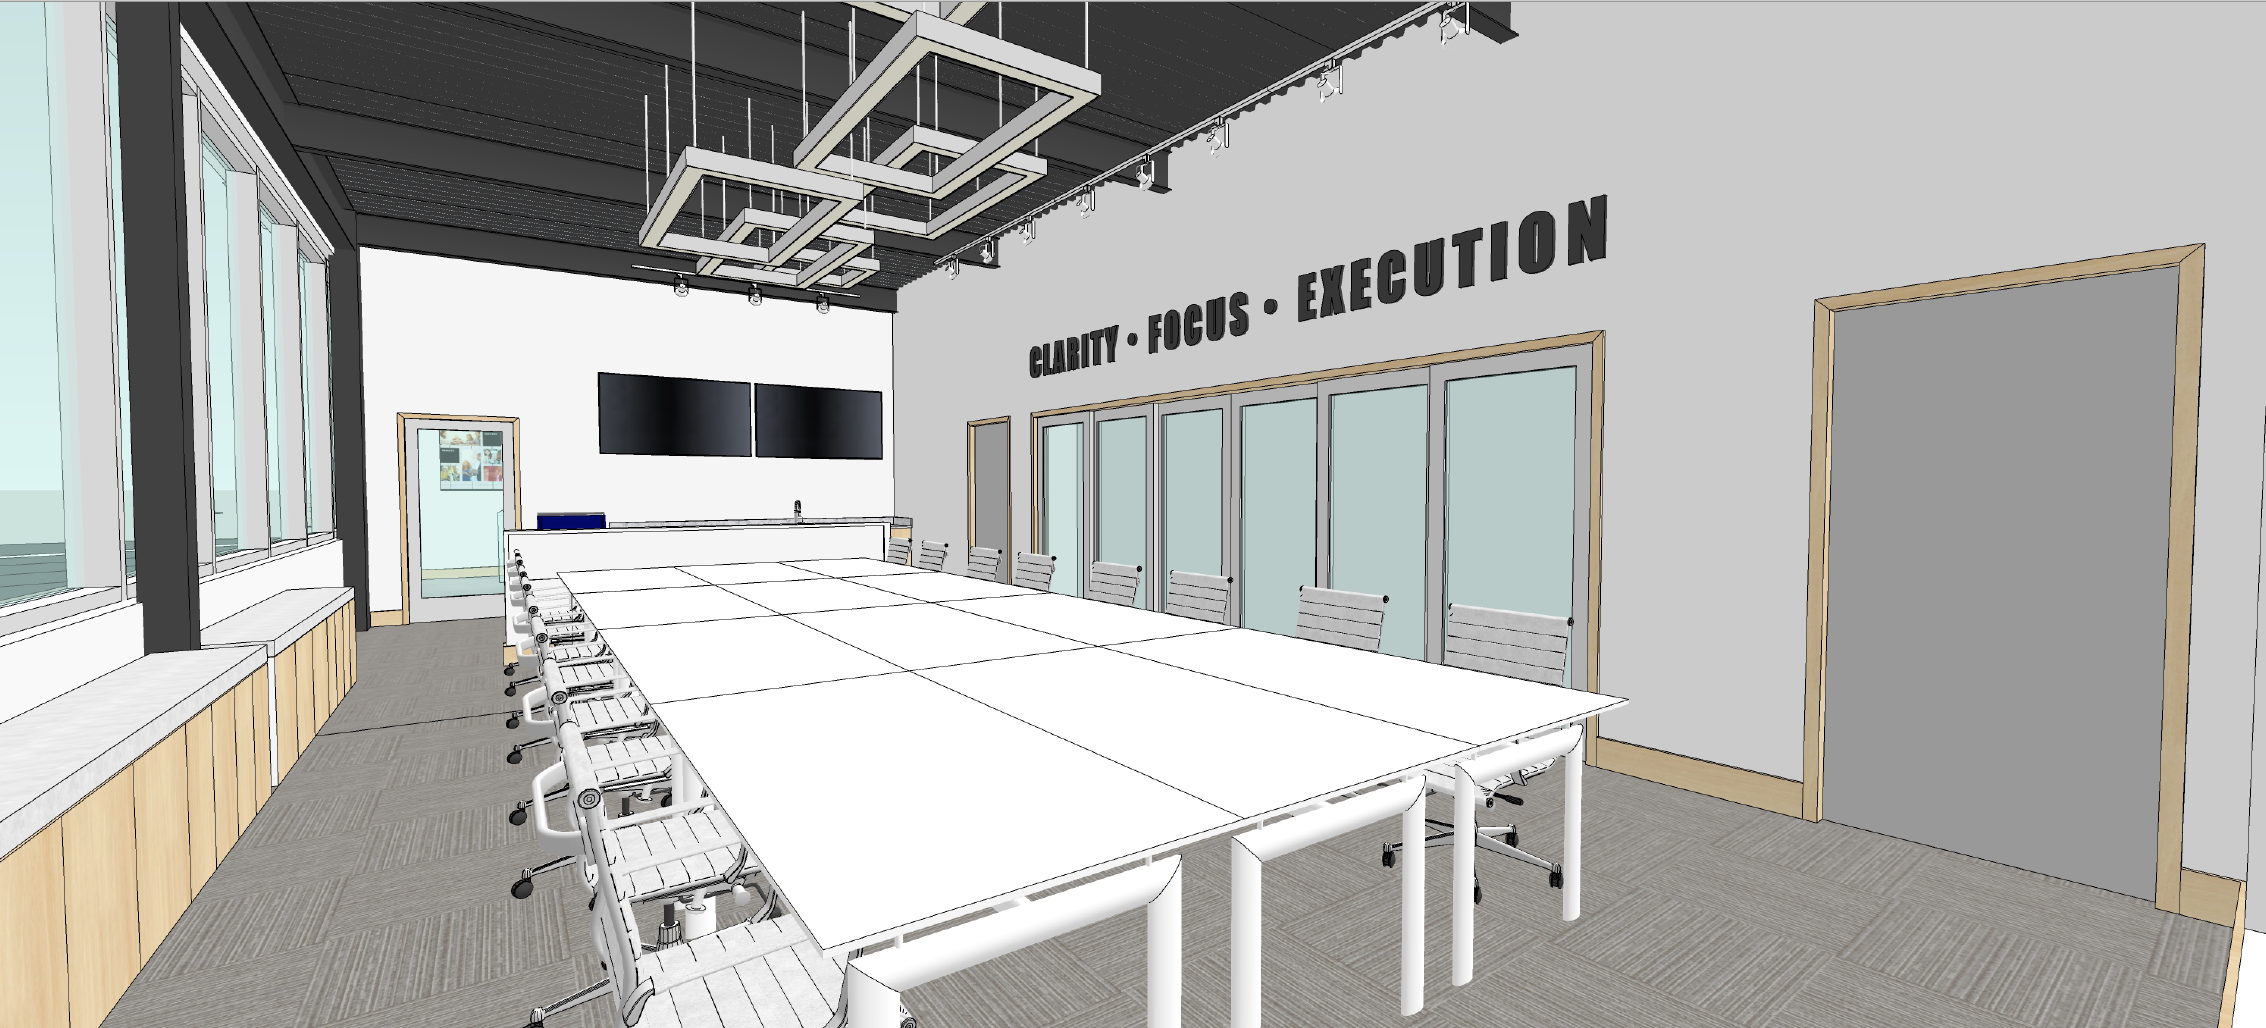 RESULTS Center Meeting Room